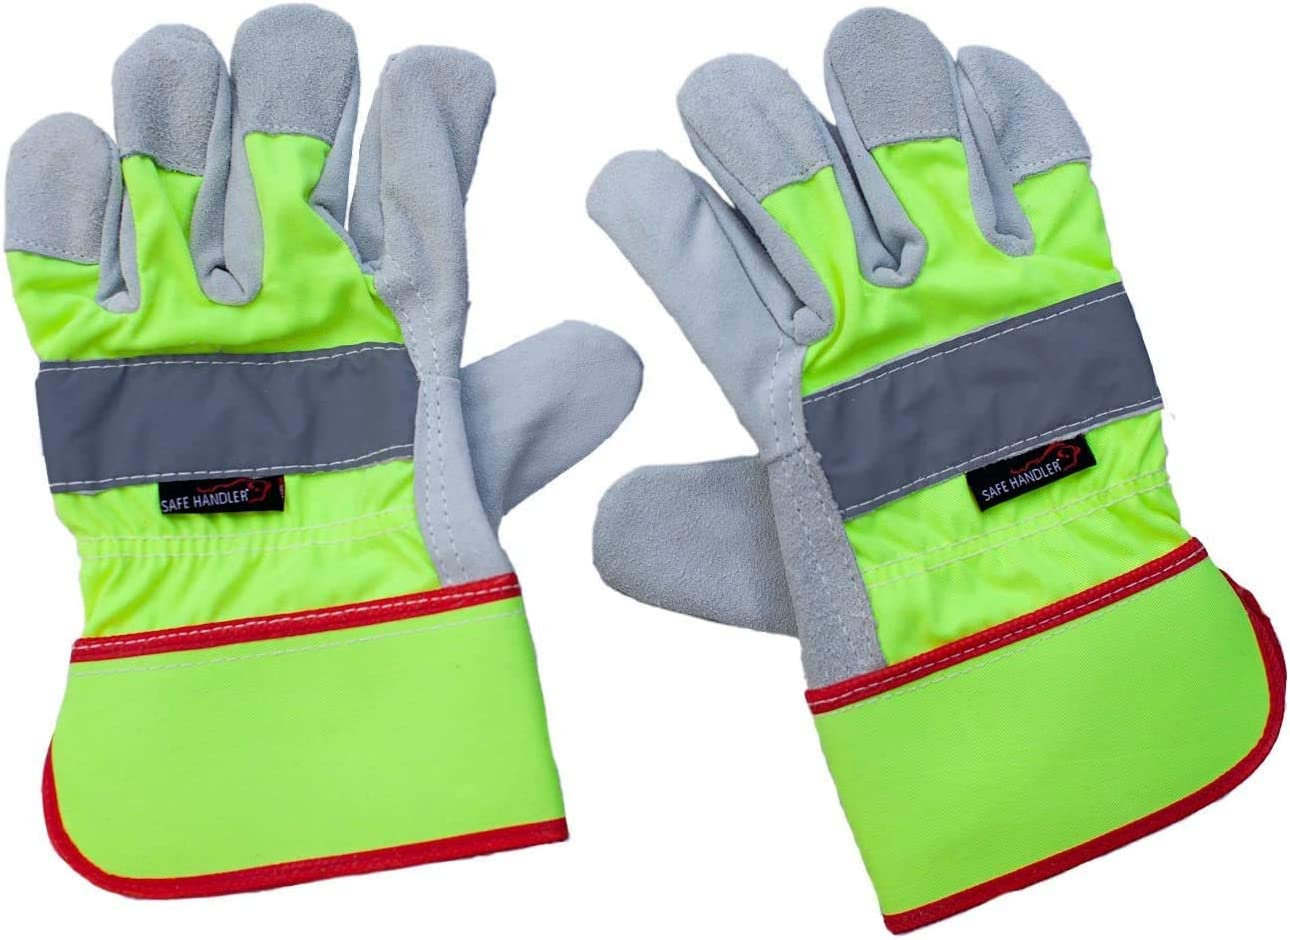 ! Super beauty product restock quality top! SAFE Sale price HANDLER Reflect Pro Rigger Reflec Visibility Gloves High